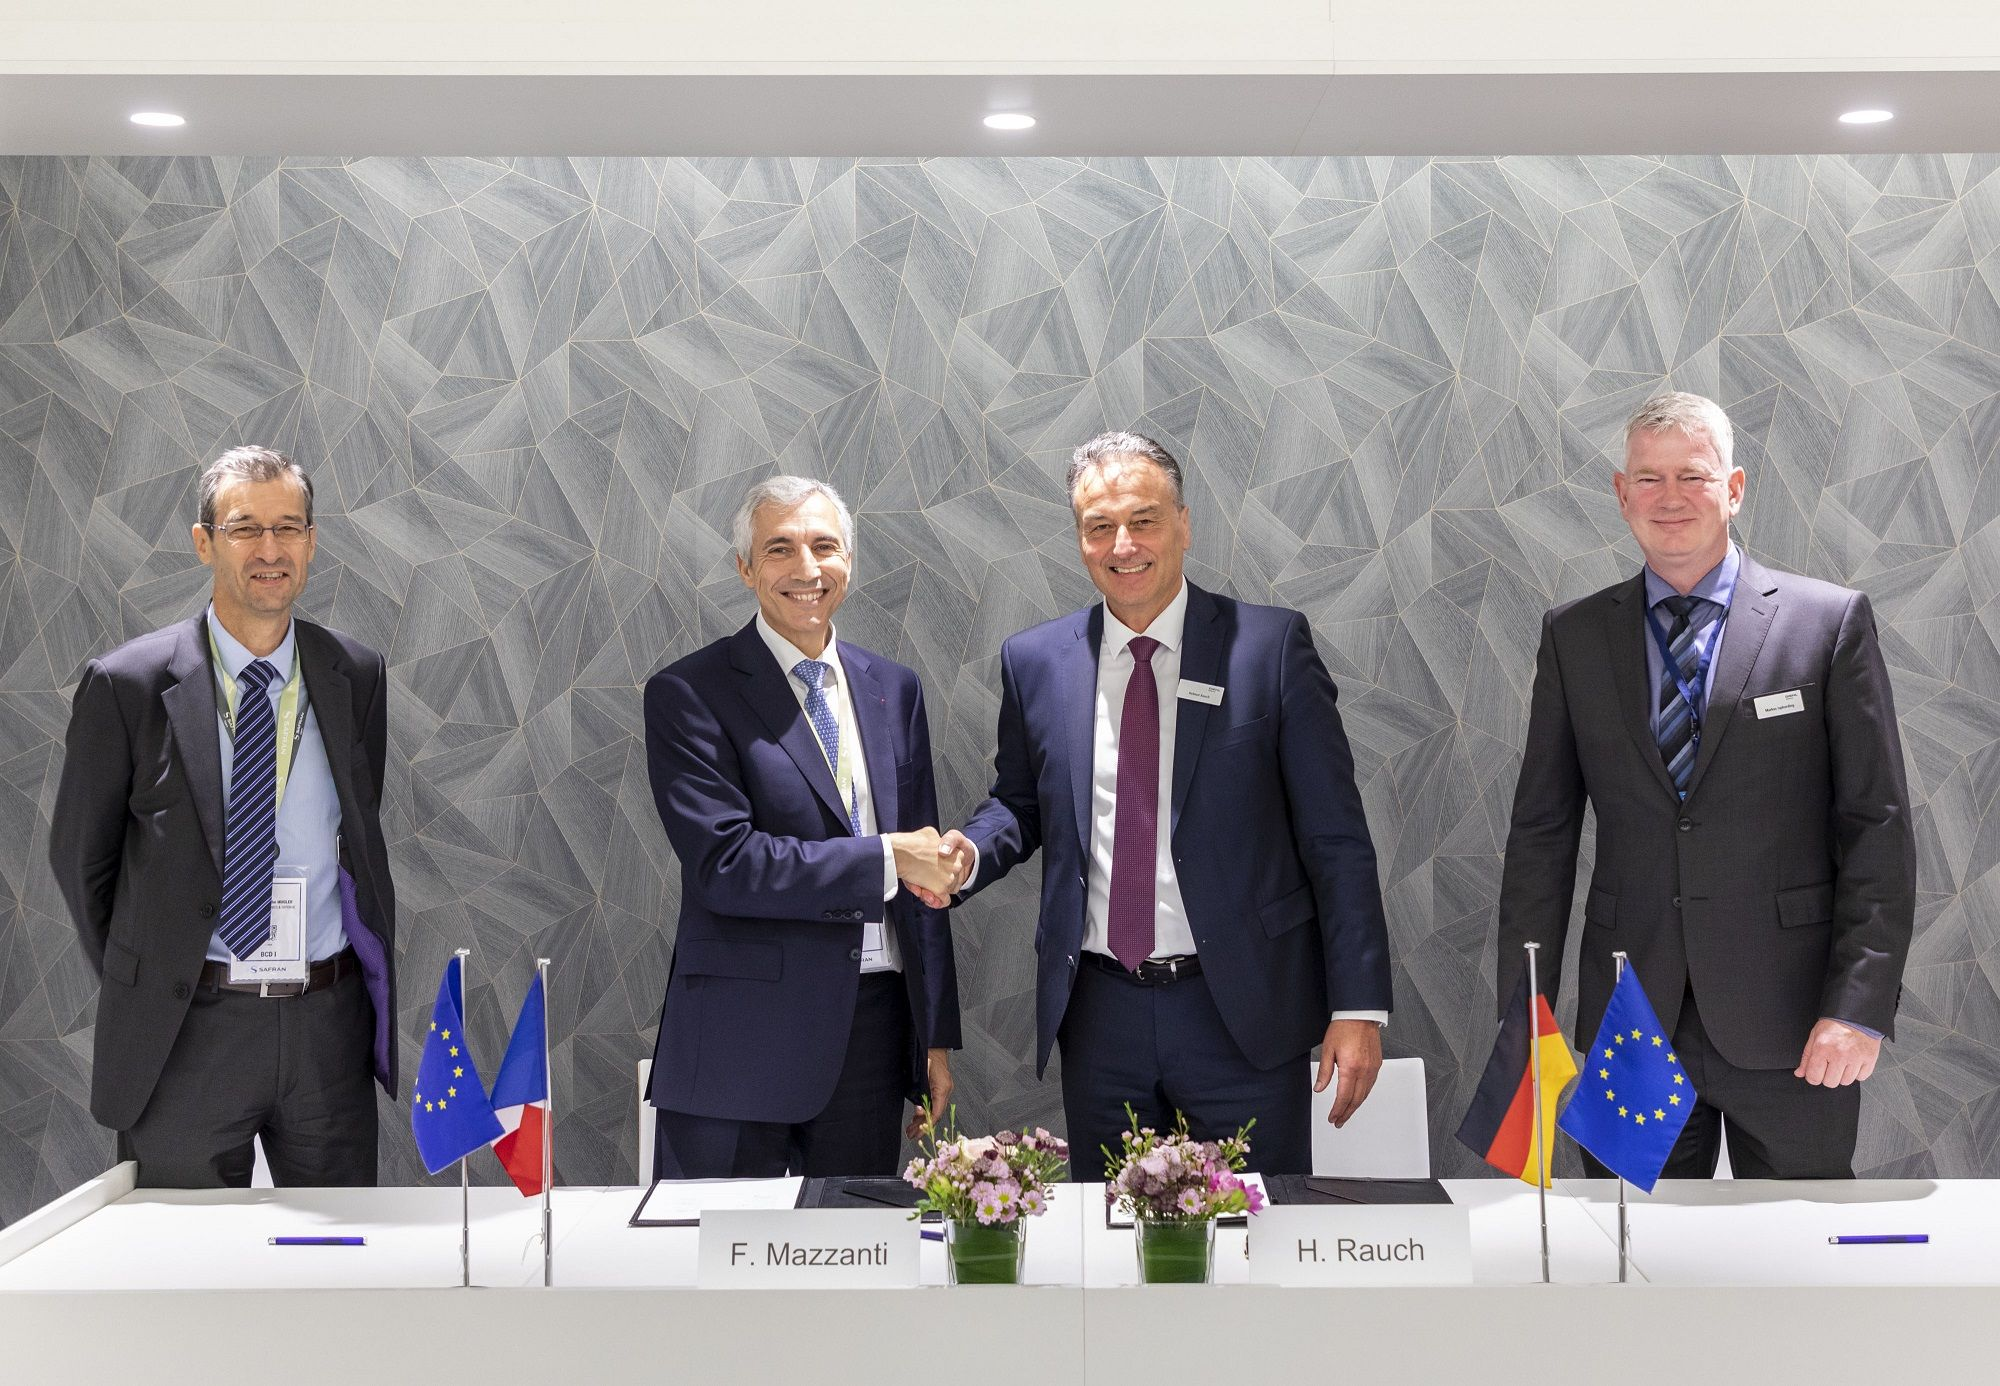 From left: Jean-Christophe Mugler, Senior VP Sales and Marketing, Safran Group; Frédéric Mazzanie, Executive VP Defense Division, Safron Group; Helmut Rauch, Chief Programme Officer, Diehl Defence; Markus Isphording, Head of Marketing Air Force Systems, Diehl Defence. (Photo: Diehl)